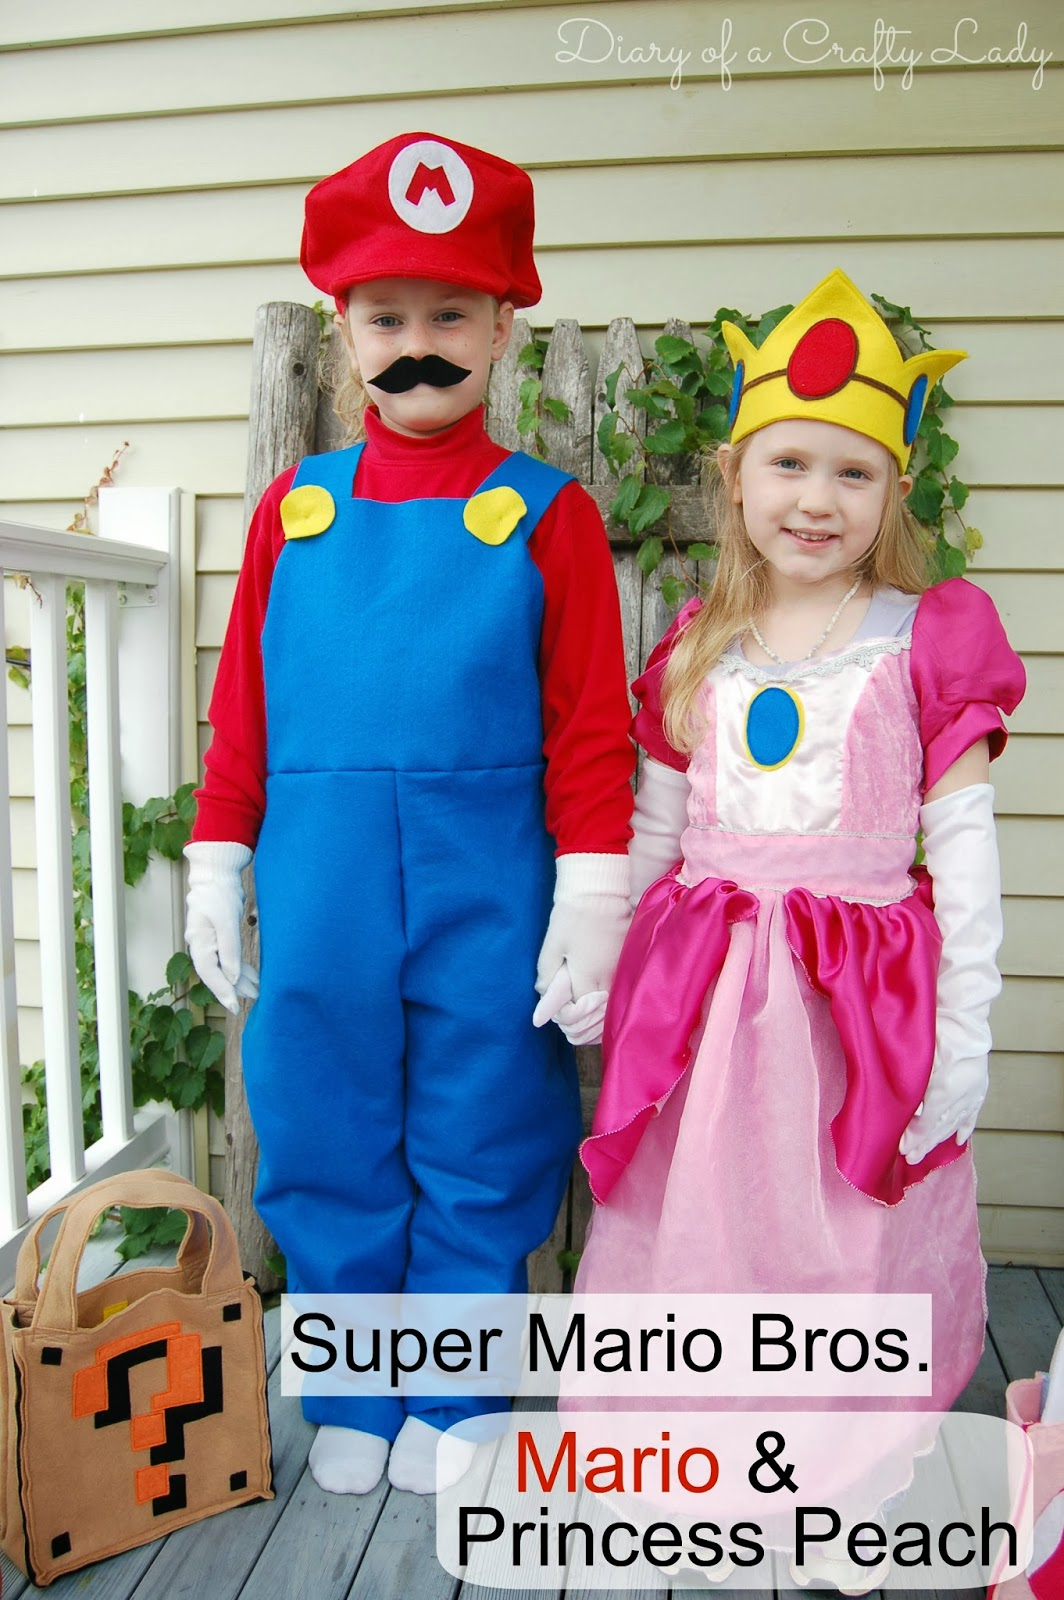 costume diary of a crafty lady meet mario and princess peach 2016 kids